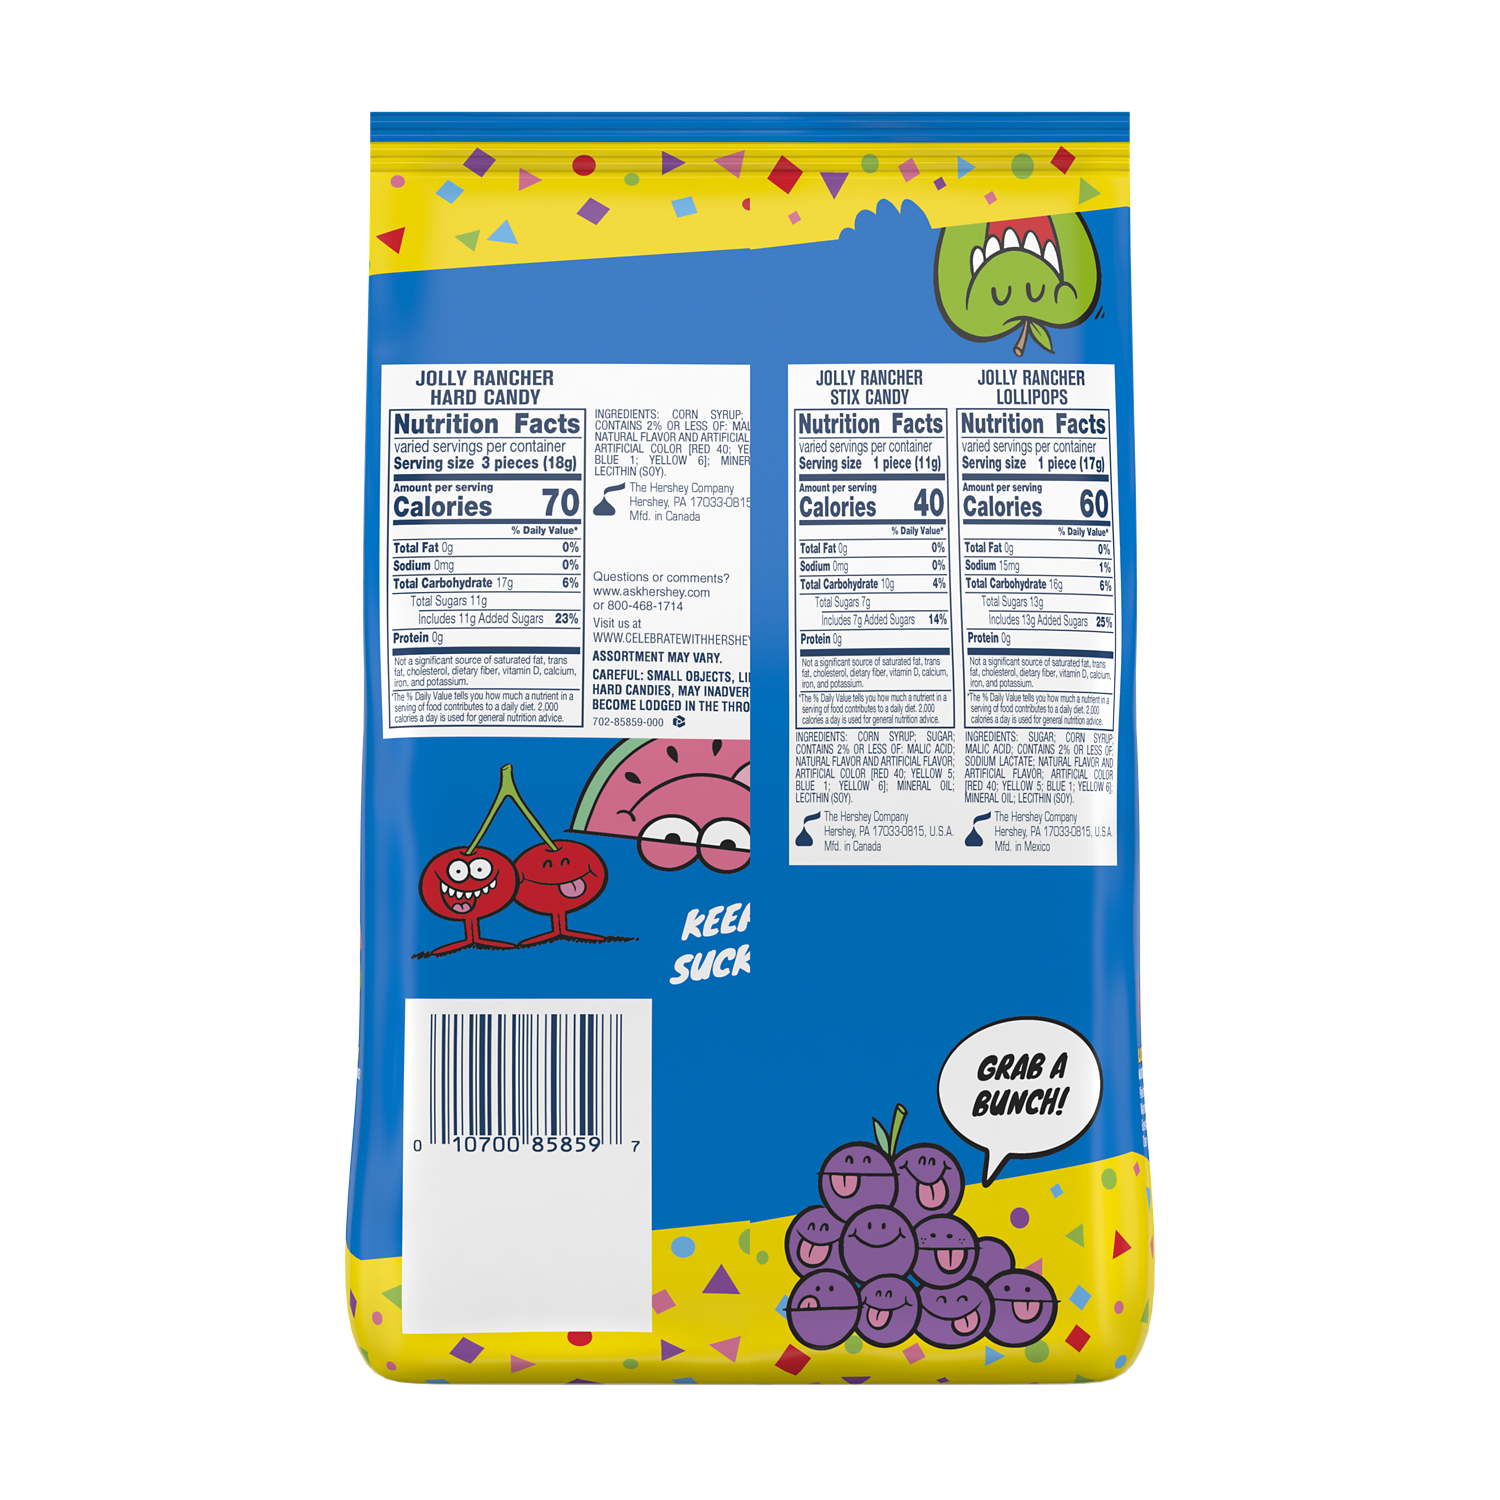 JOLLY RANCHER Candy Assortment, 46 oz bag - Back of Package